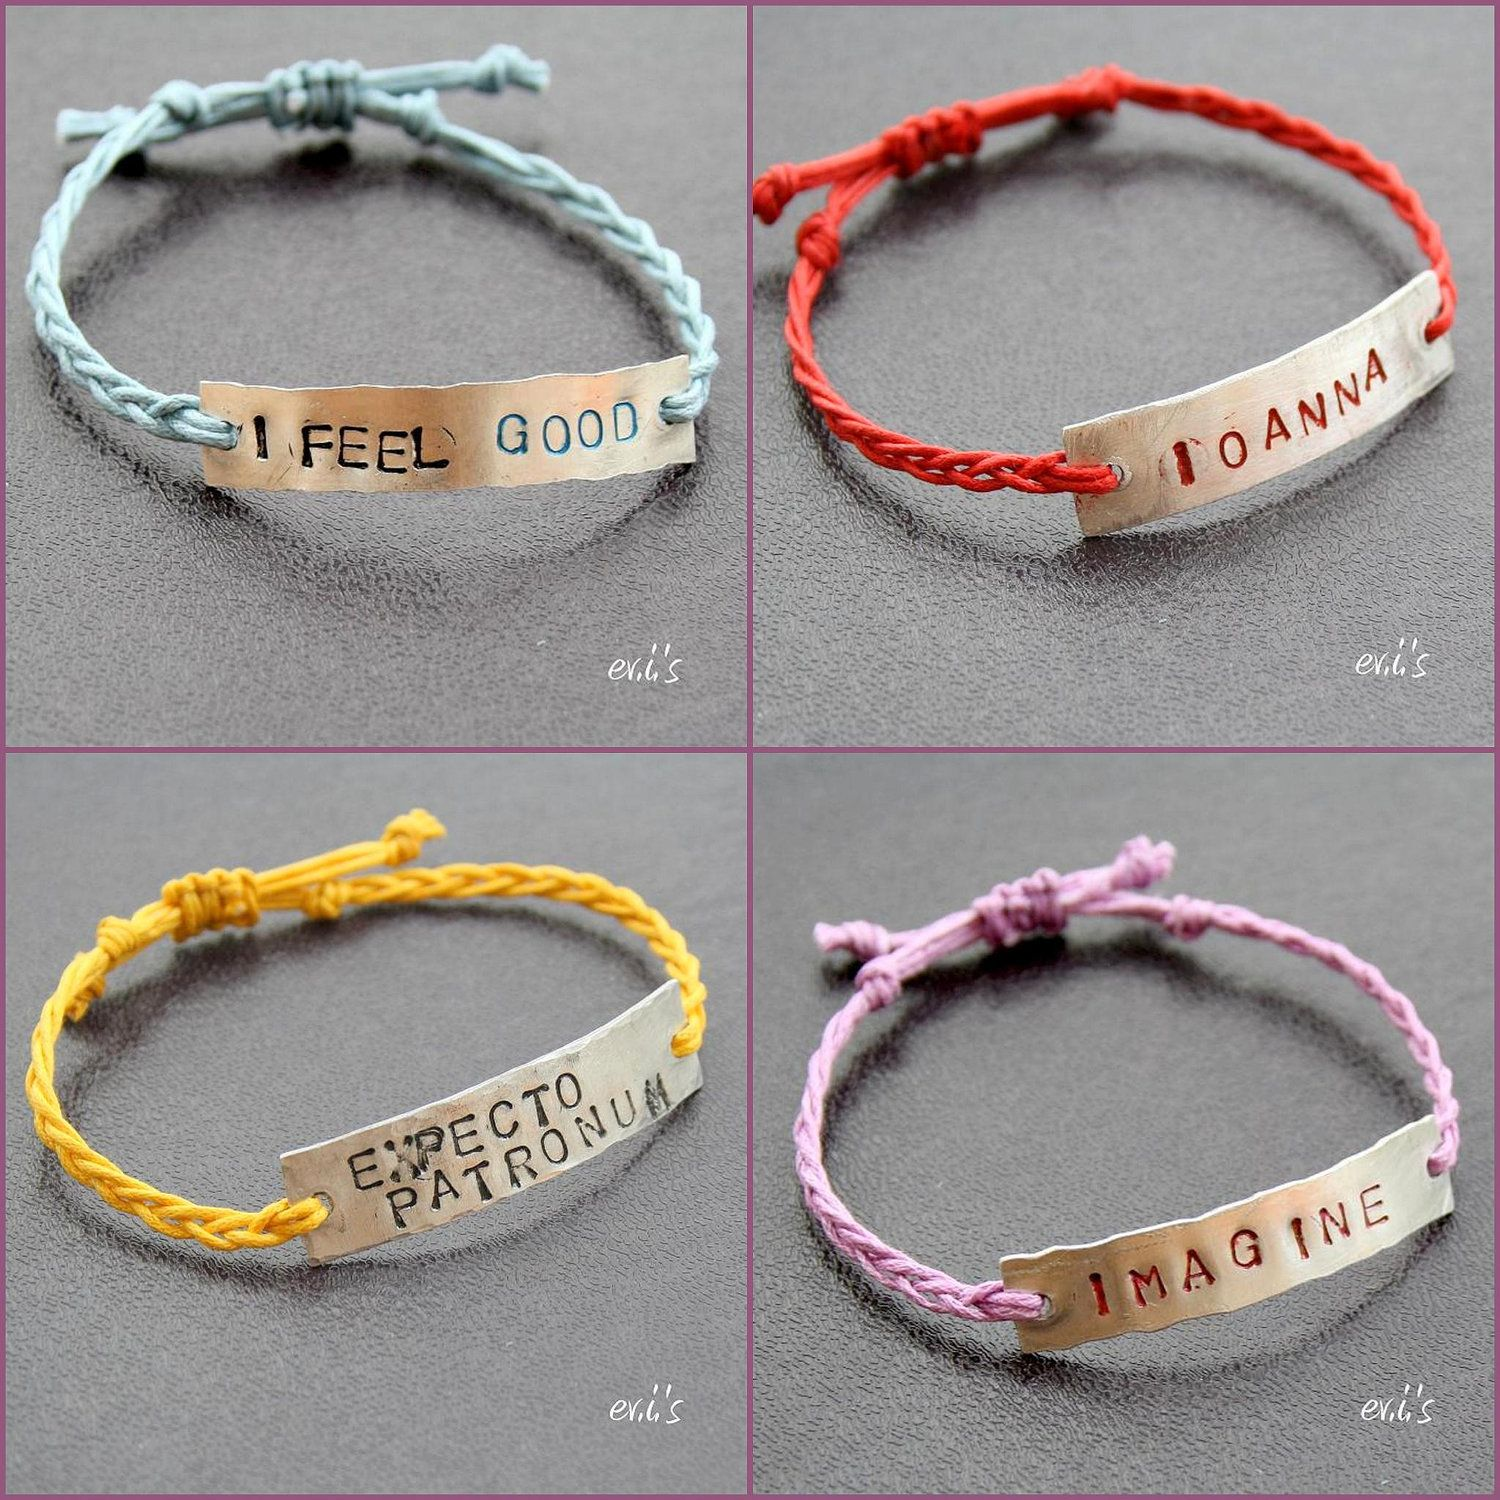 KISS ME Hand Stamped Metal Tag Bracelet With Dark Blue Cotton Cord Friendship Adjustable Artisan Gift For Her EUR1200 Via Etsy